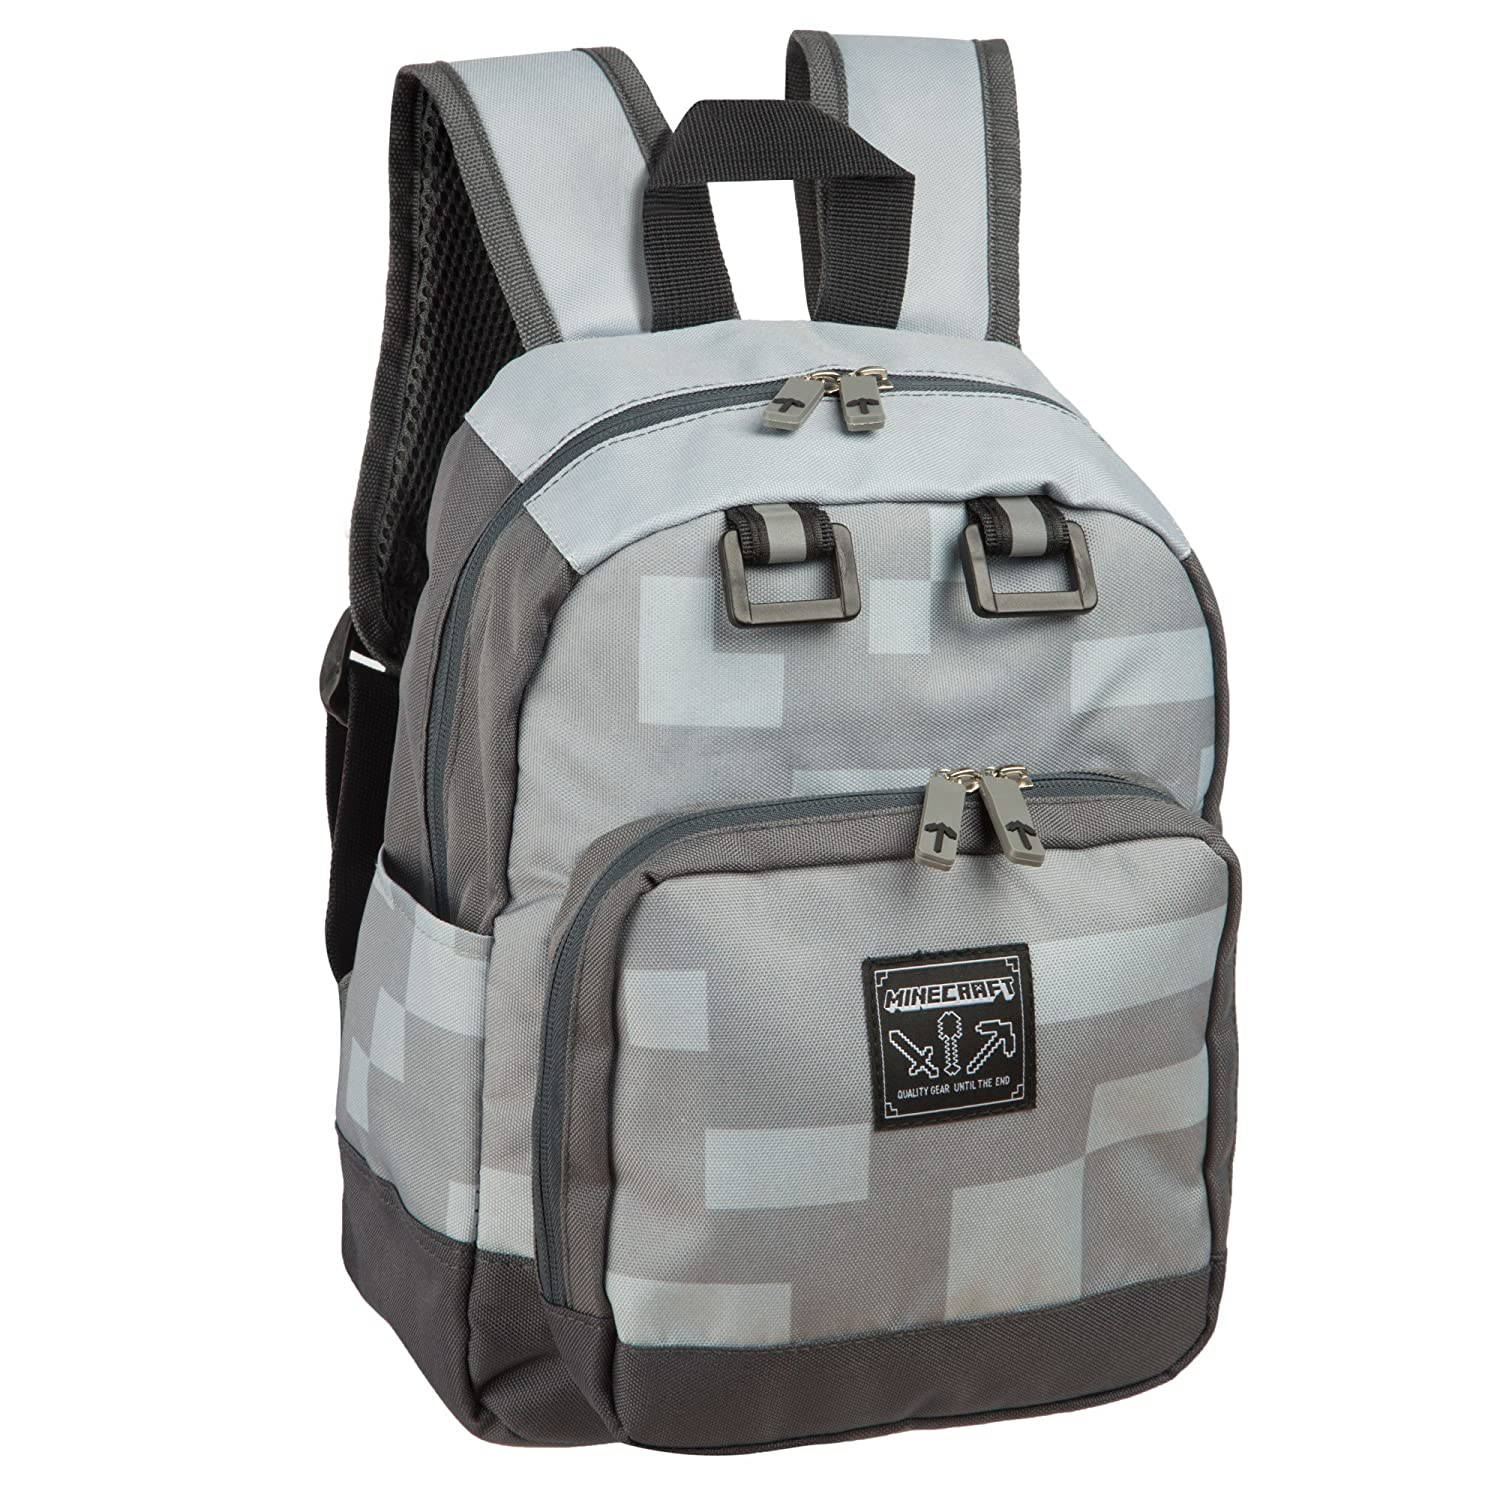 Minecraft - Mochila oficial de Minecraft modelo Diamond Mini para niños/niñas Fashion UK